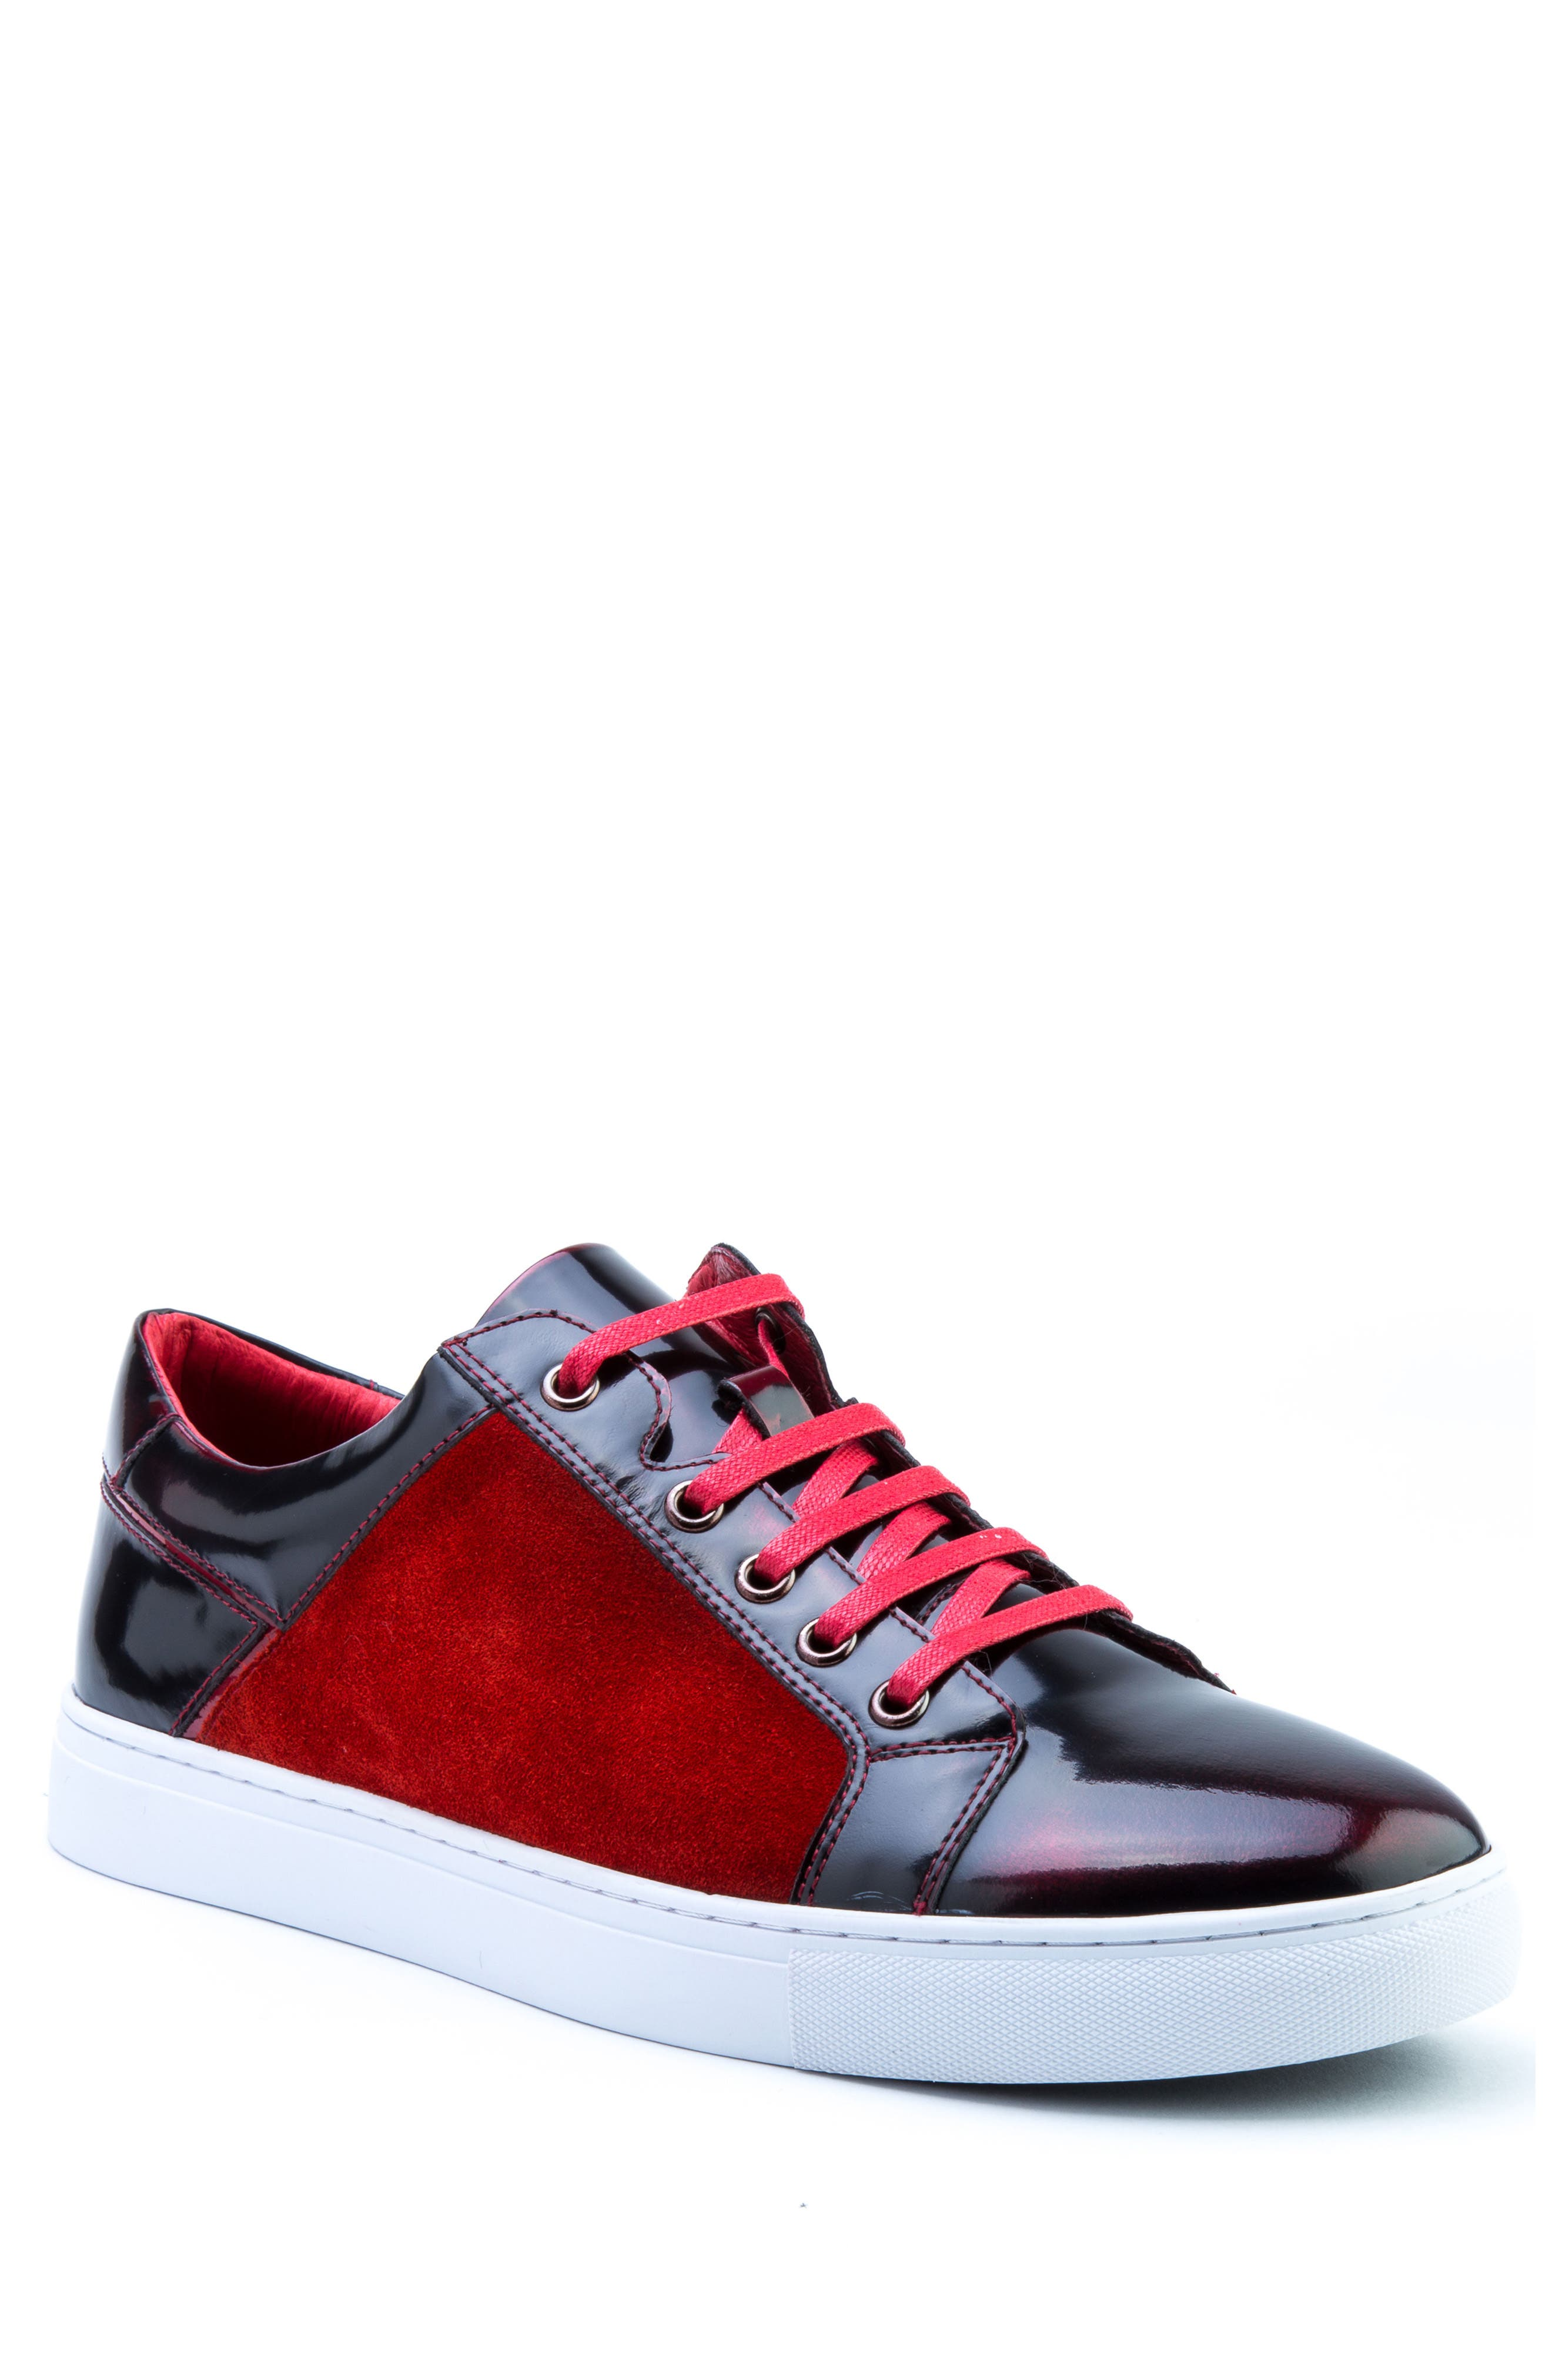 Lockhart Sneaker,                             Main thumbnail 1, color,                             Red Leather